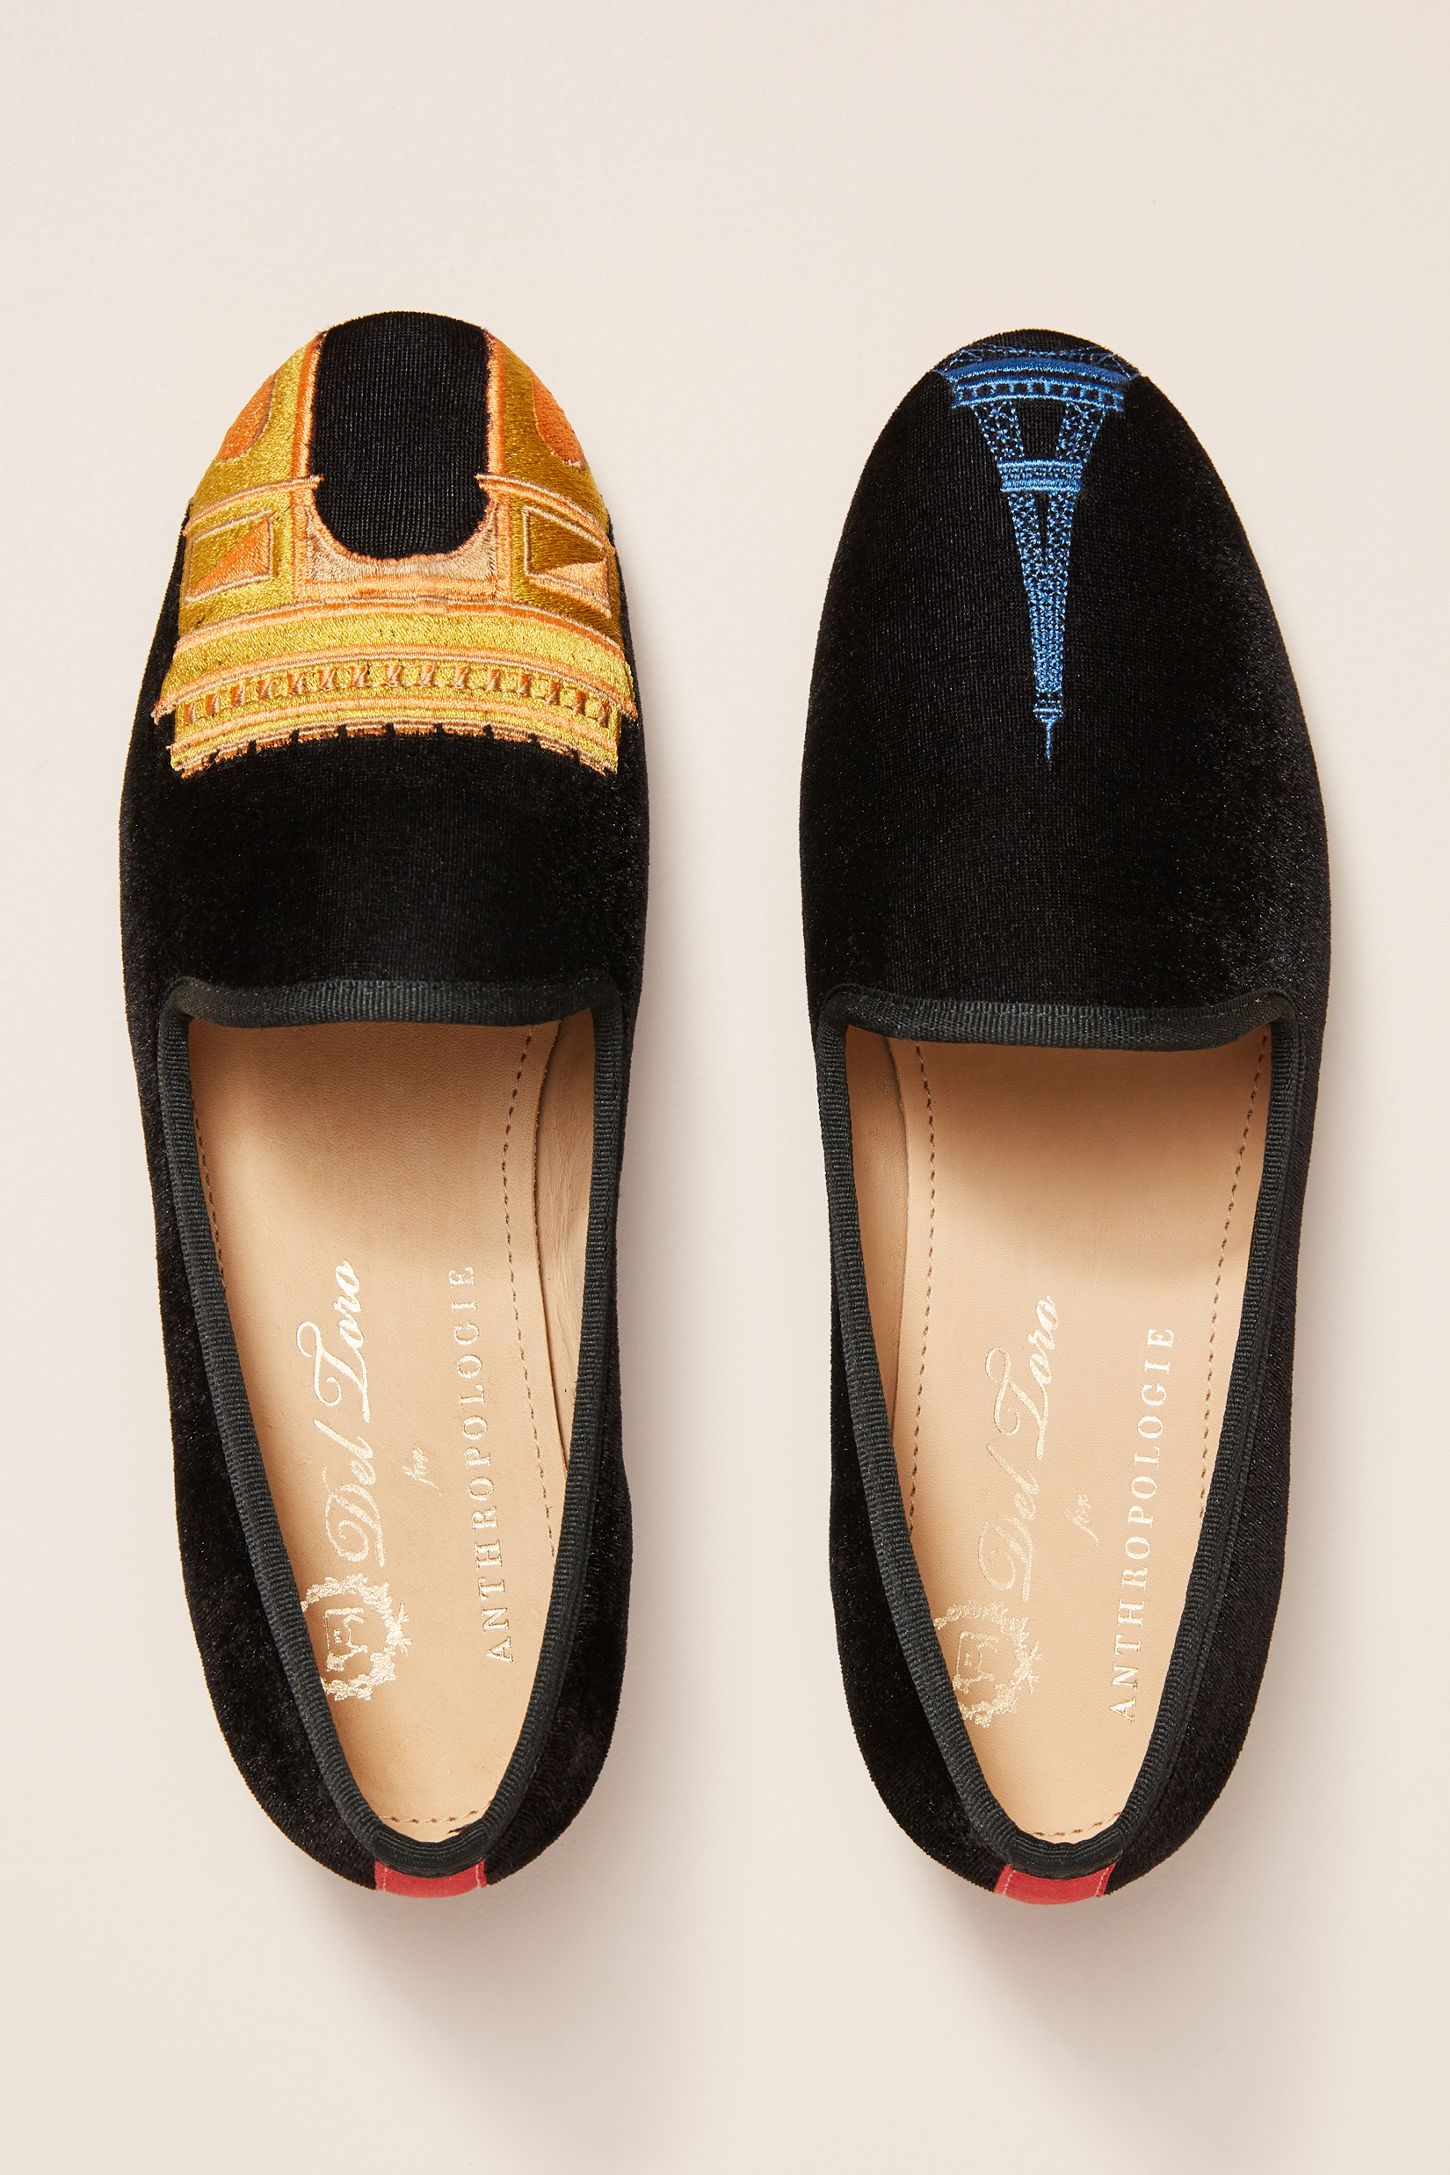 265ea6ac608 Del Toro Paris Flats. Tap image to zoom. Hover your mouse over an image to  zoom. Double Tap to Zoom